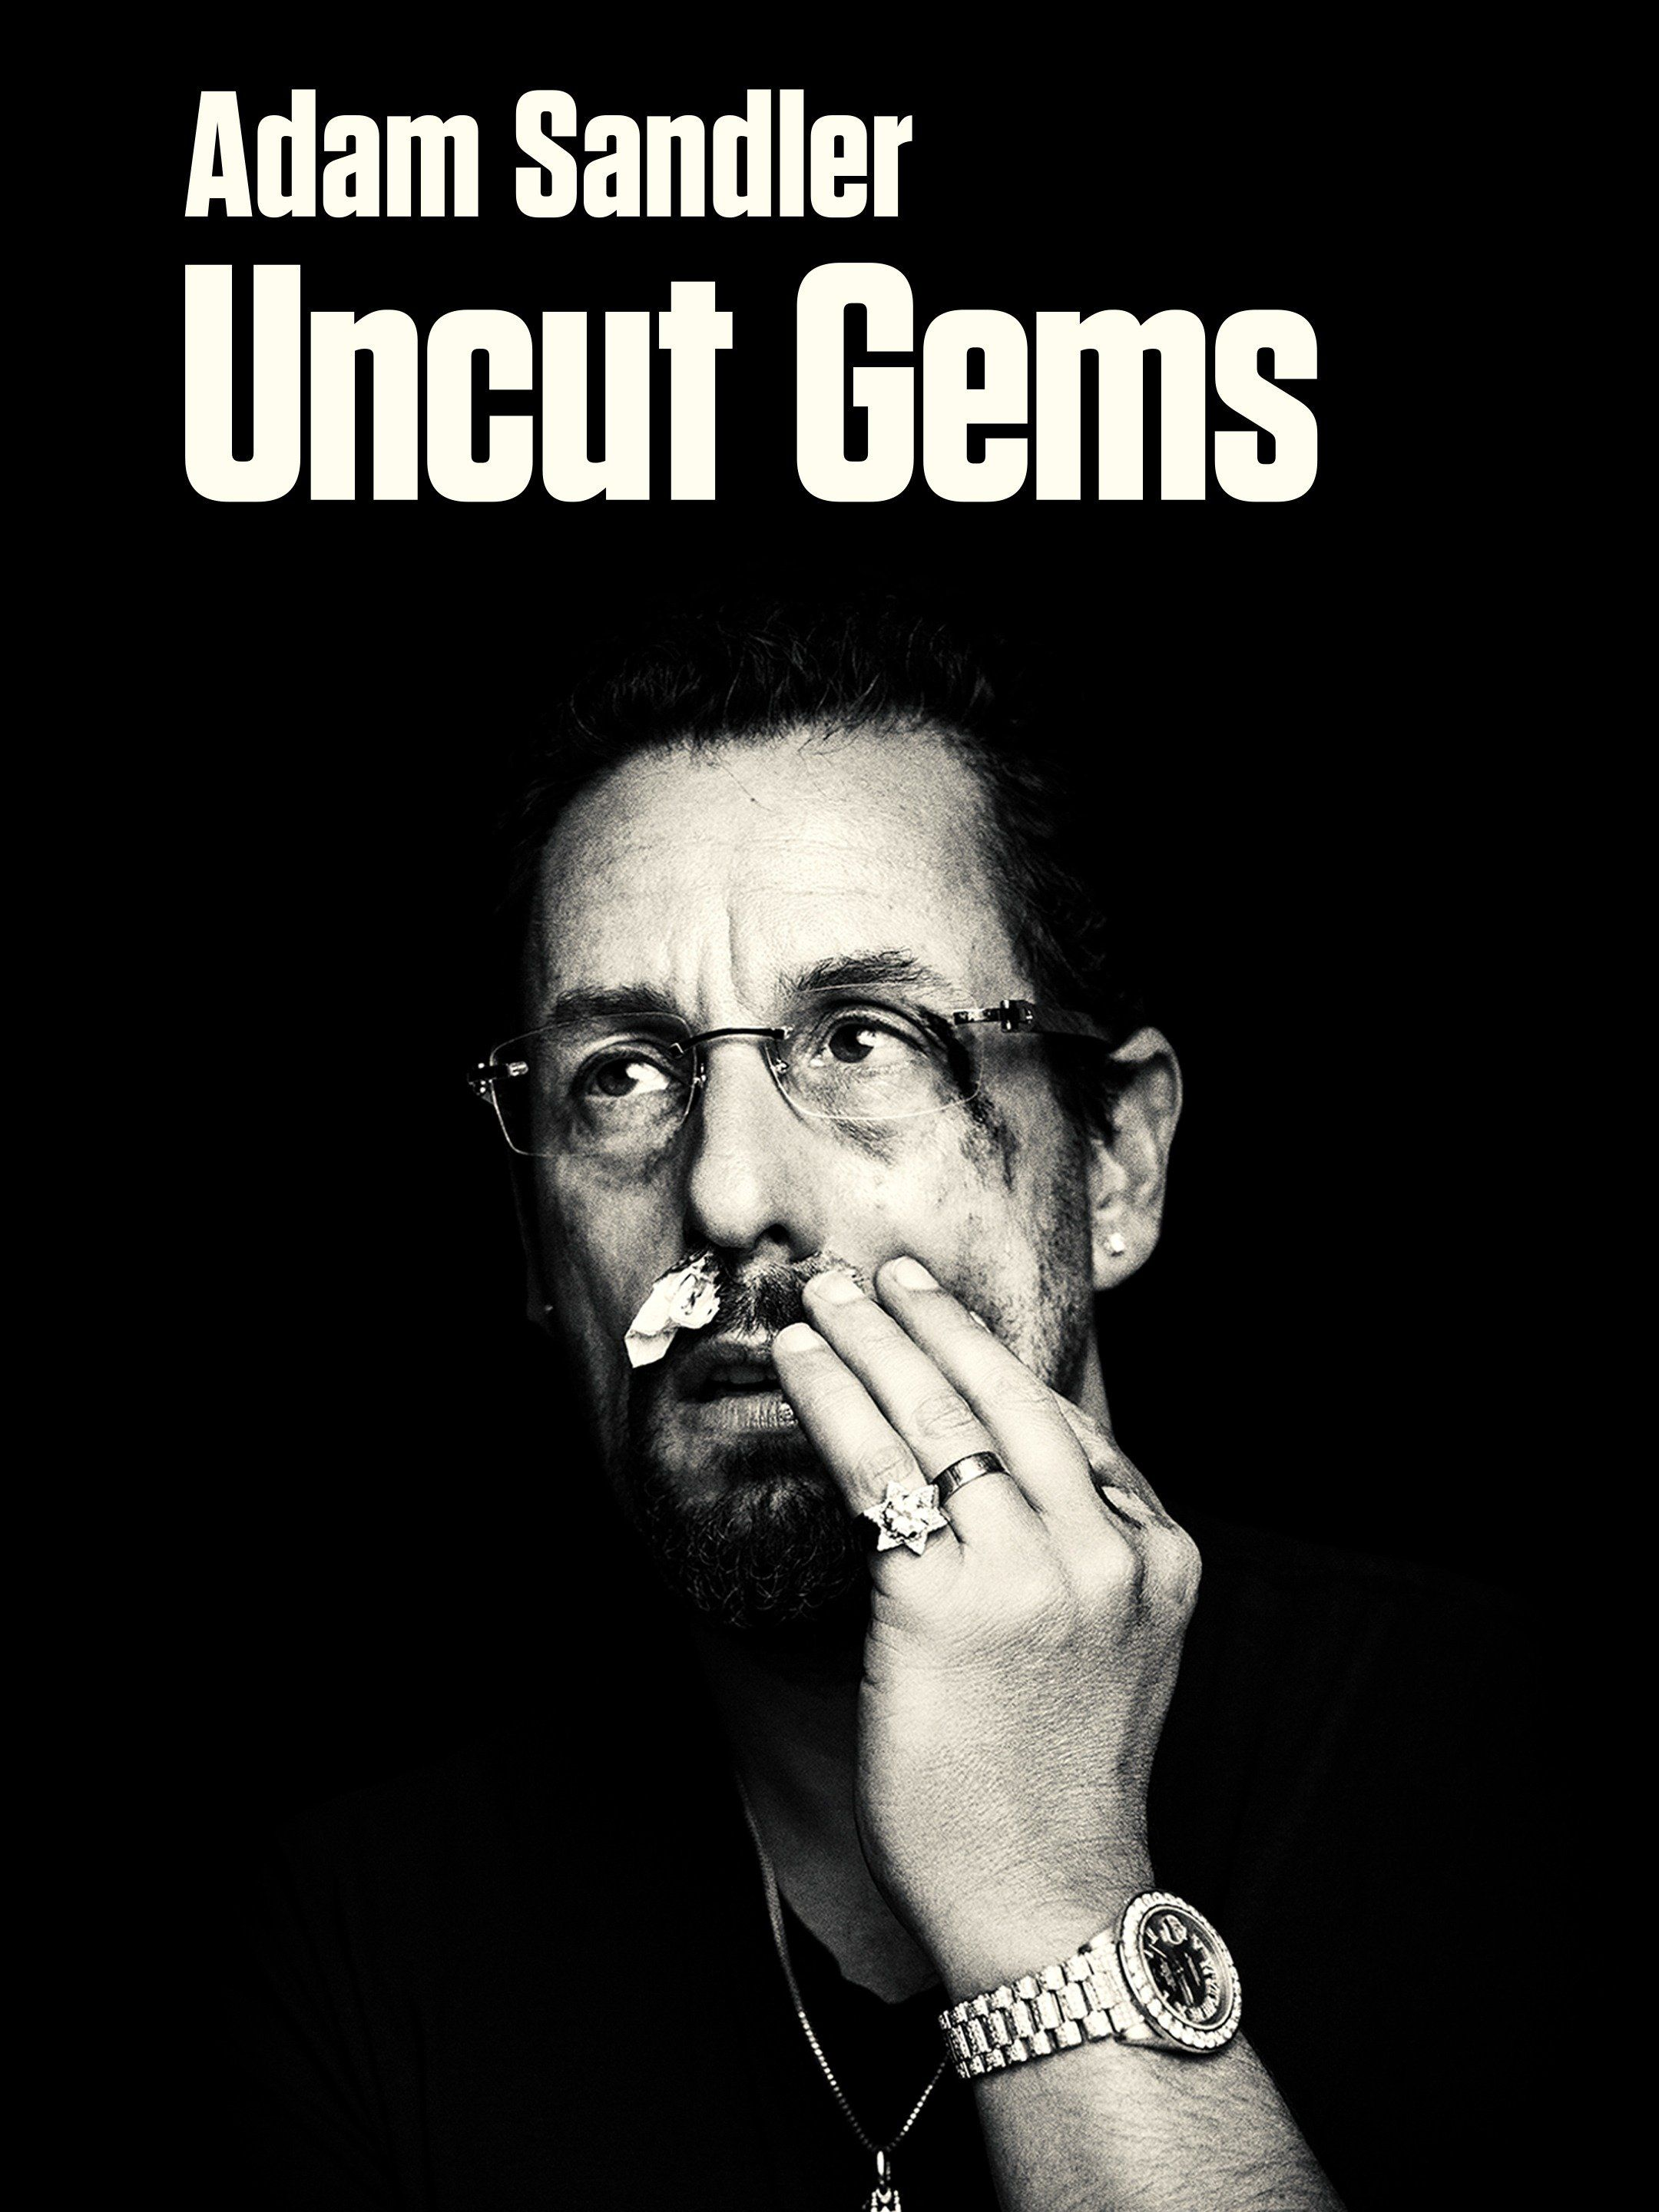 Uncut Gems (2019) in 2020 Full movies online free